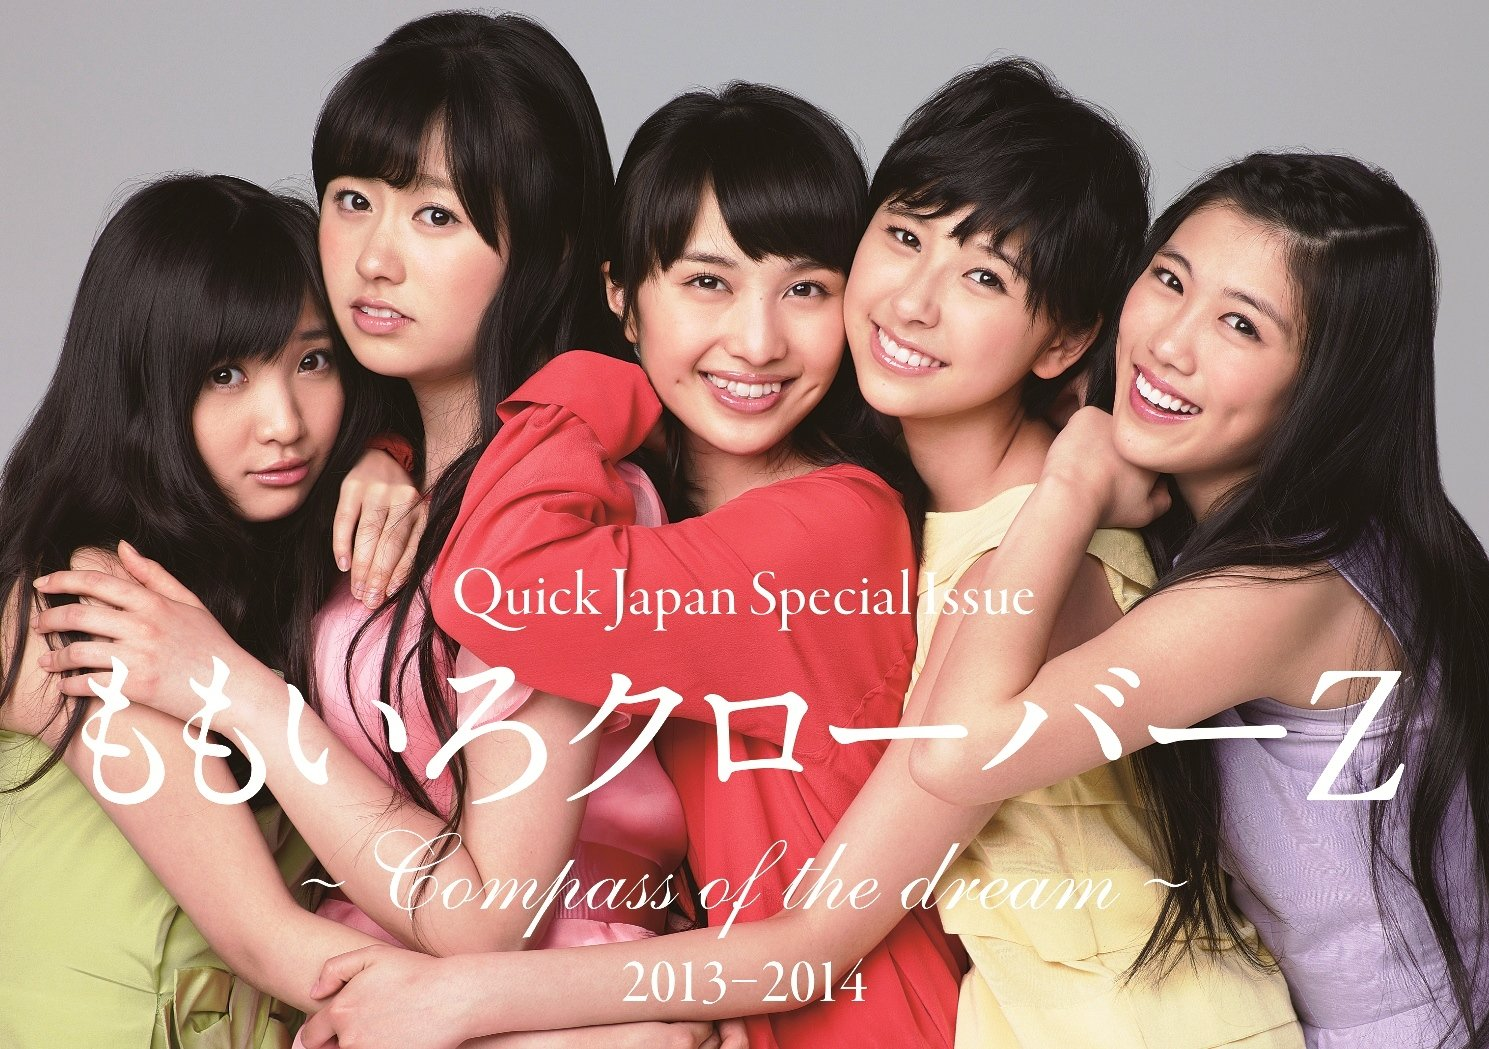 Download Quick Japan Special Issue momoiroclover Z ~Compass of the dream~ 2013-2014 PDF